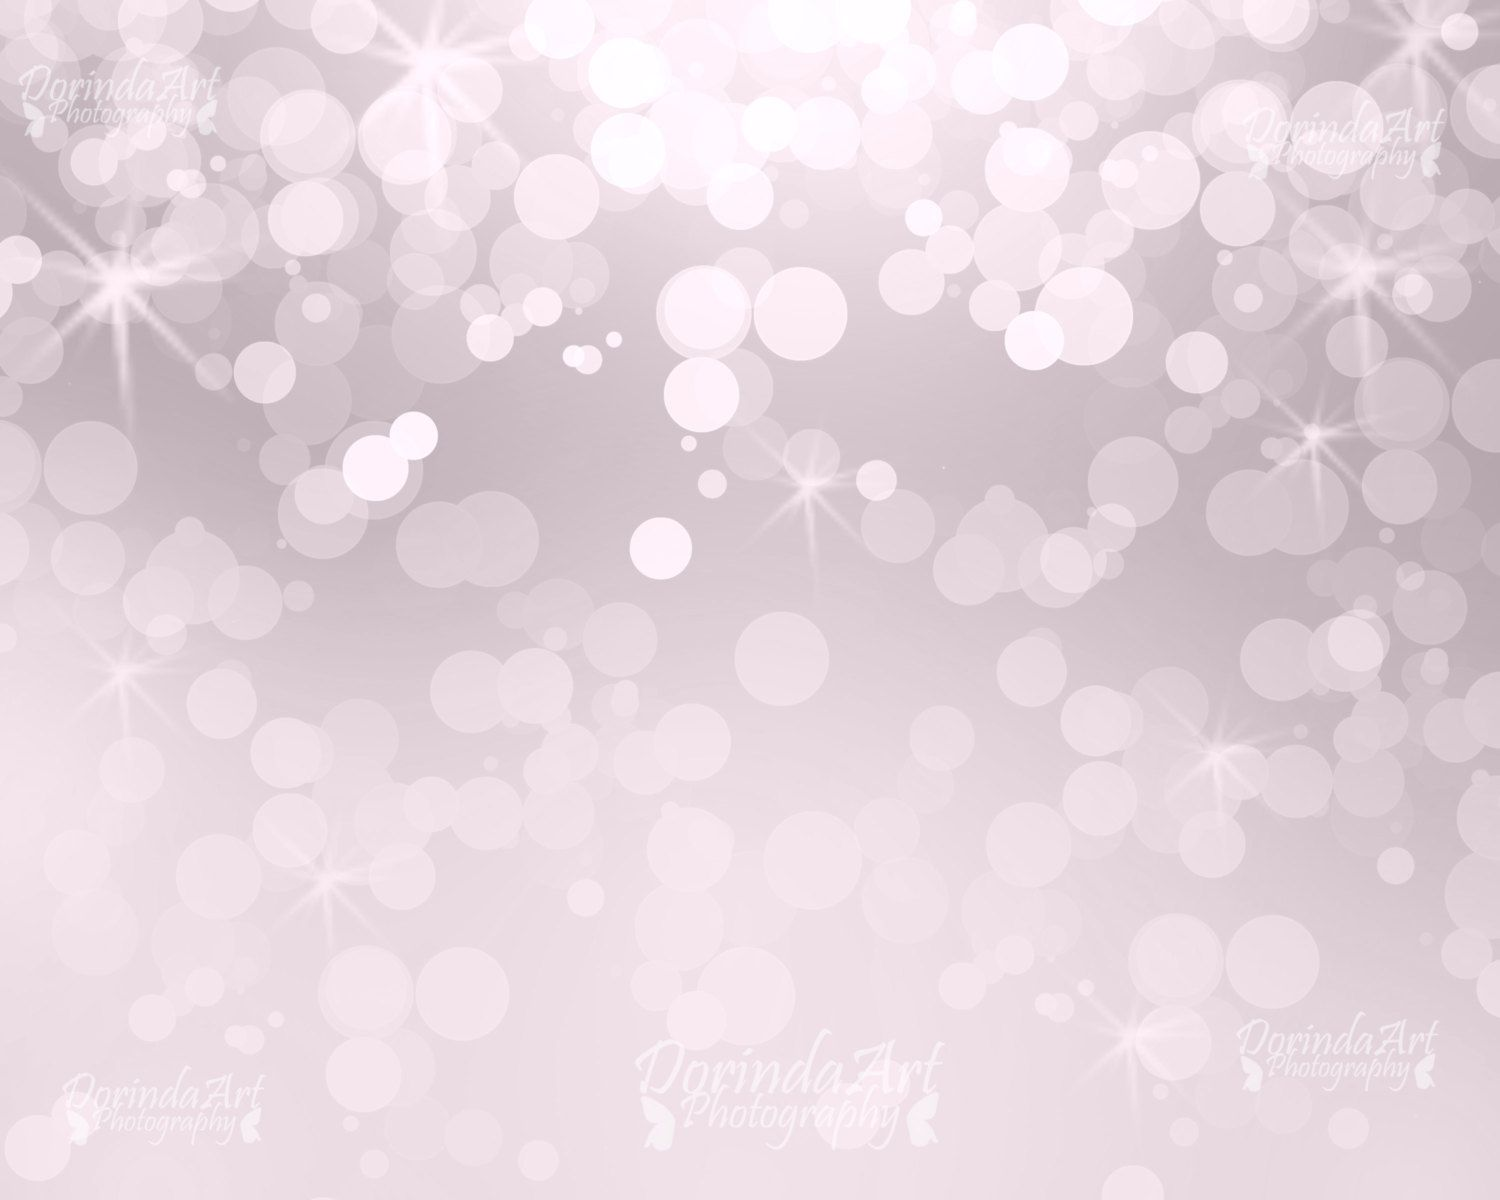 Printable paper backgrounds christmas - Wallpaper Christmas Lights Wallpapers Wallpaper Bokeh Backgroundchristmas Backgroundprintable Paperfree